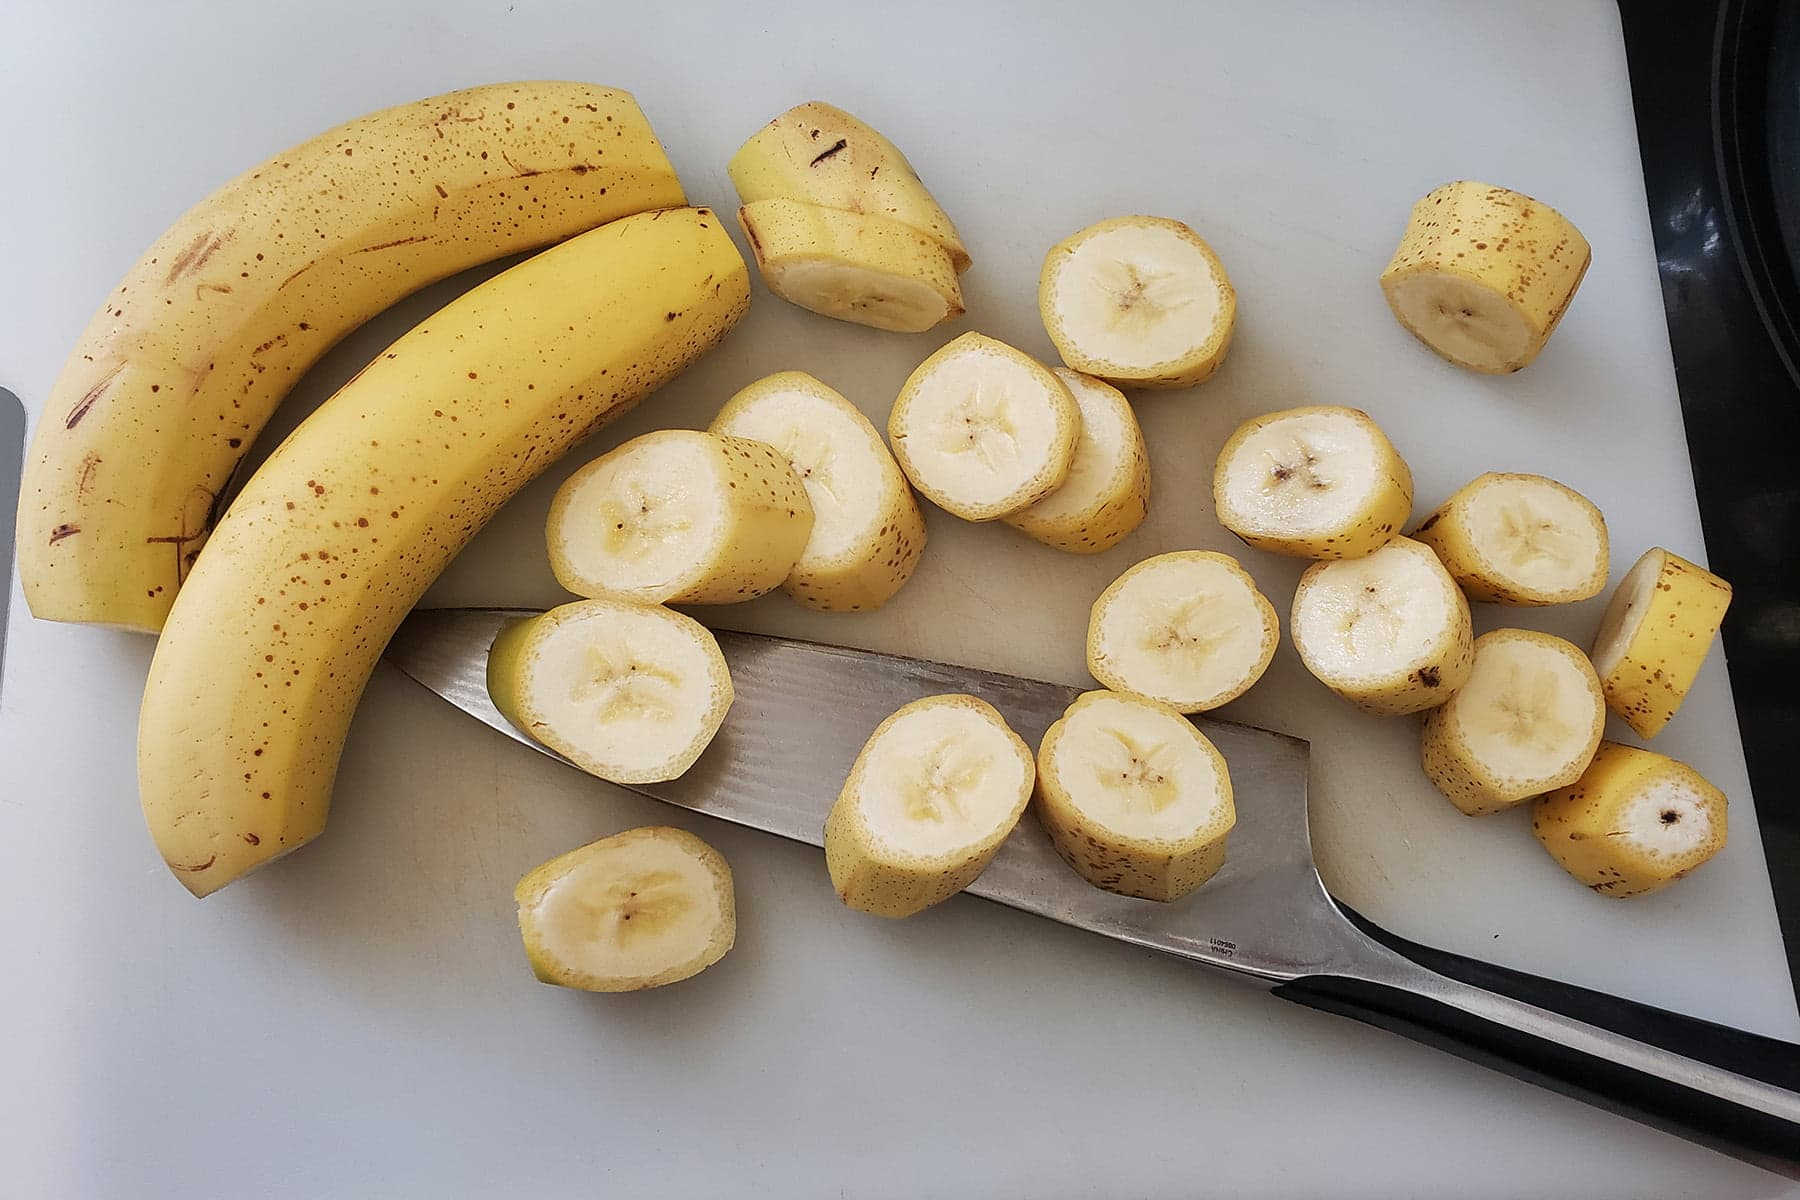 Bananas - whole and sliced - scattered across a cutting board.